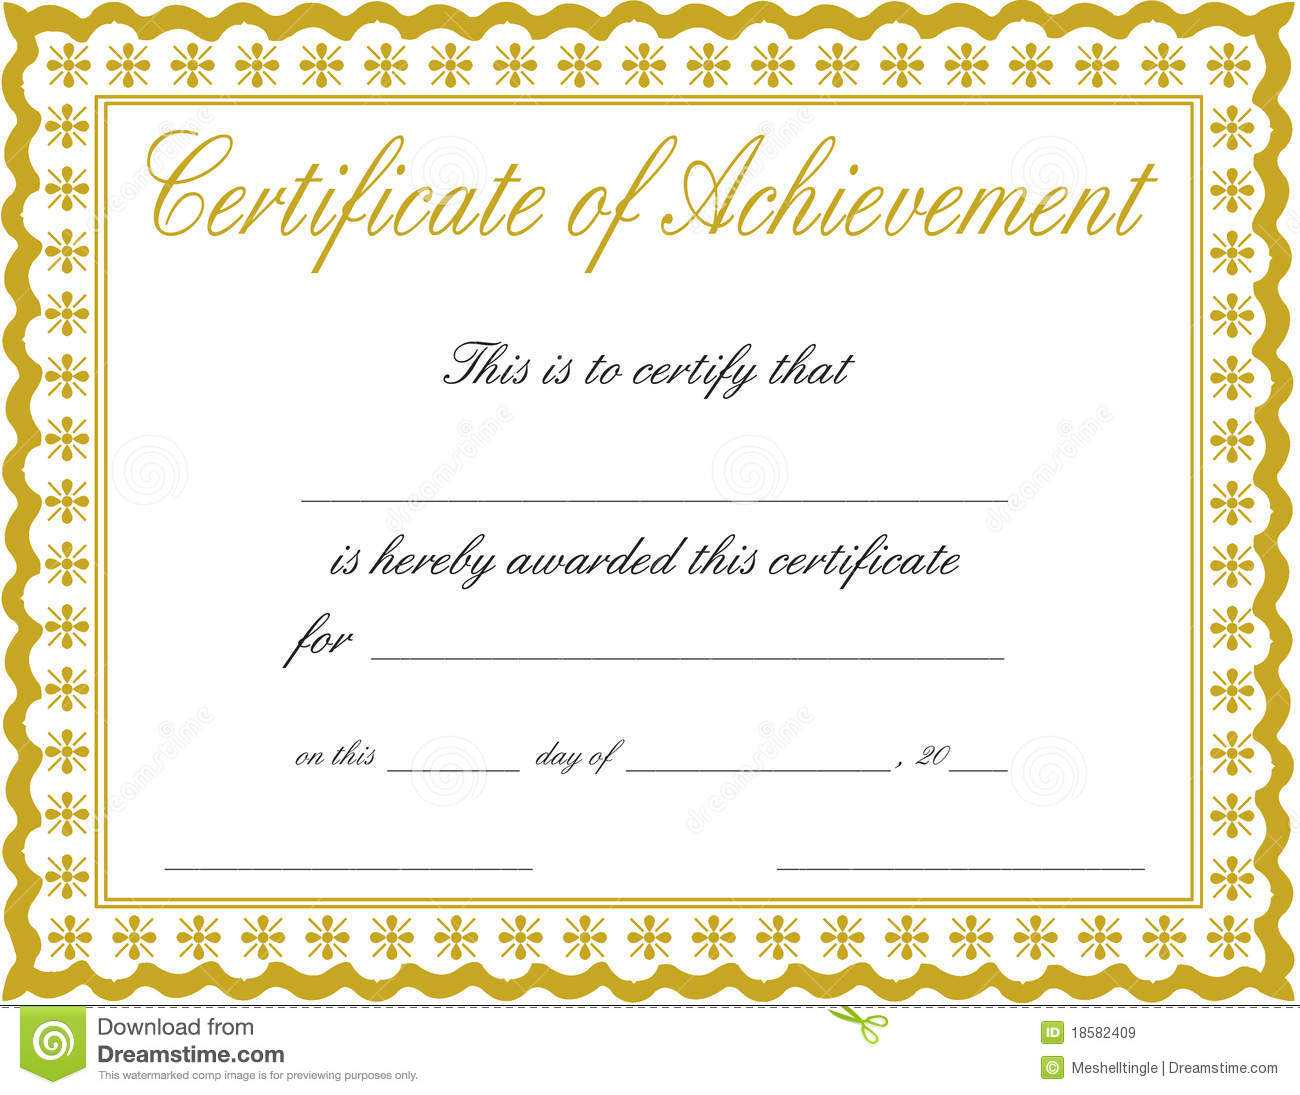 011 Free Printable Certificate Of Achievement Template Blank Within Blank Certificate Of Achievement Template